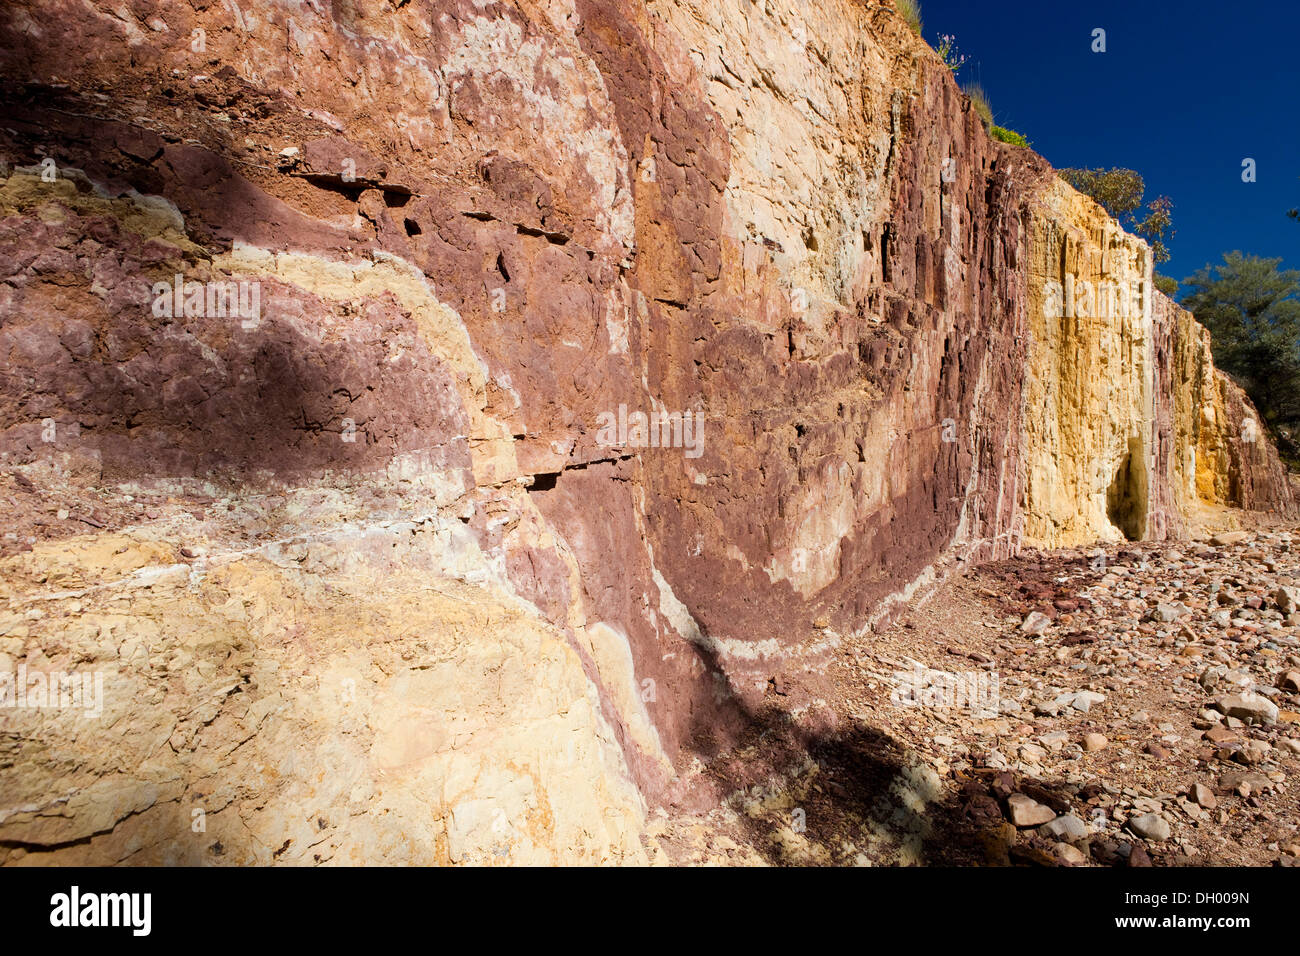 Ochre Pits, West MacDonnell National Park, Northern Territory, Australia - Stock Image